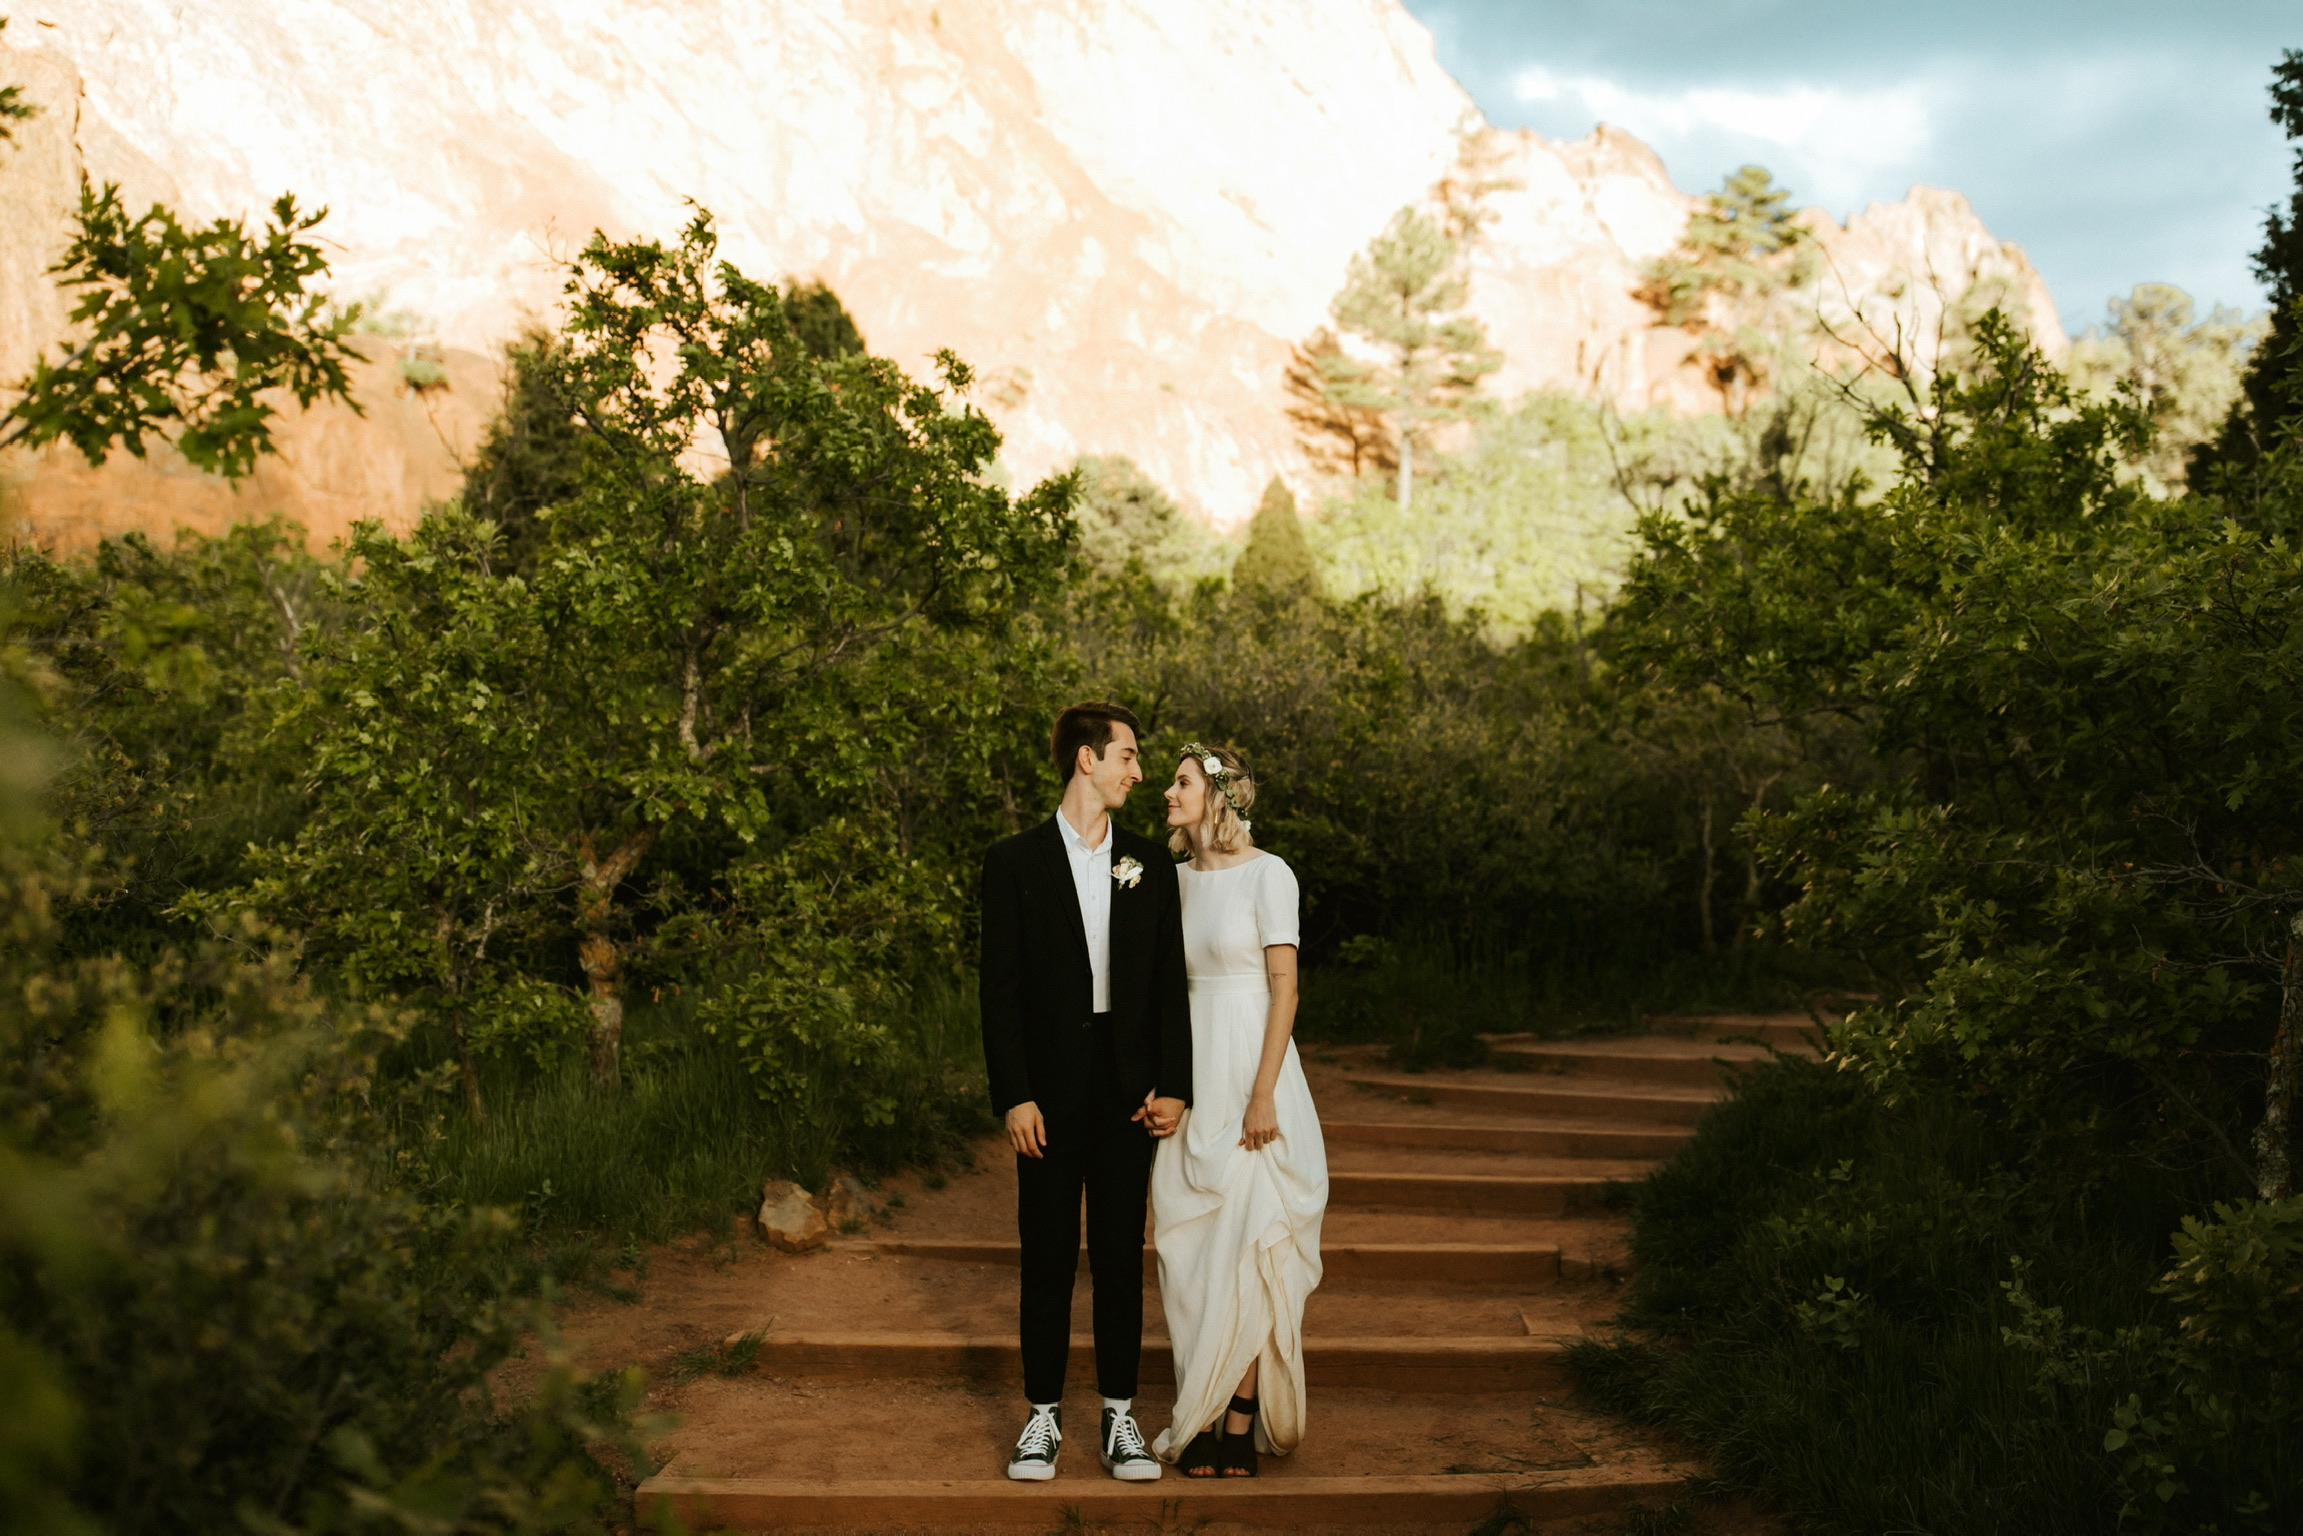 Lindsey & Jacob knew they wanted to have an intimate destination wedding, and eventually decided on Garden of the Gods in Colorado Springs. They wanted to make sure the day was special and as stress-free as possible…only surrounded by best friends and immediate family. Lindsey loved that Jacob chose to wear green PF Flyers - perfect for the day, and perfect for him.